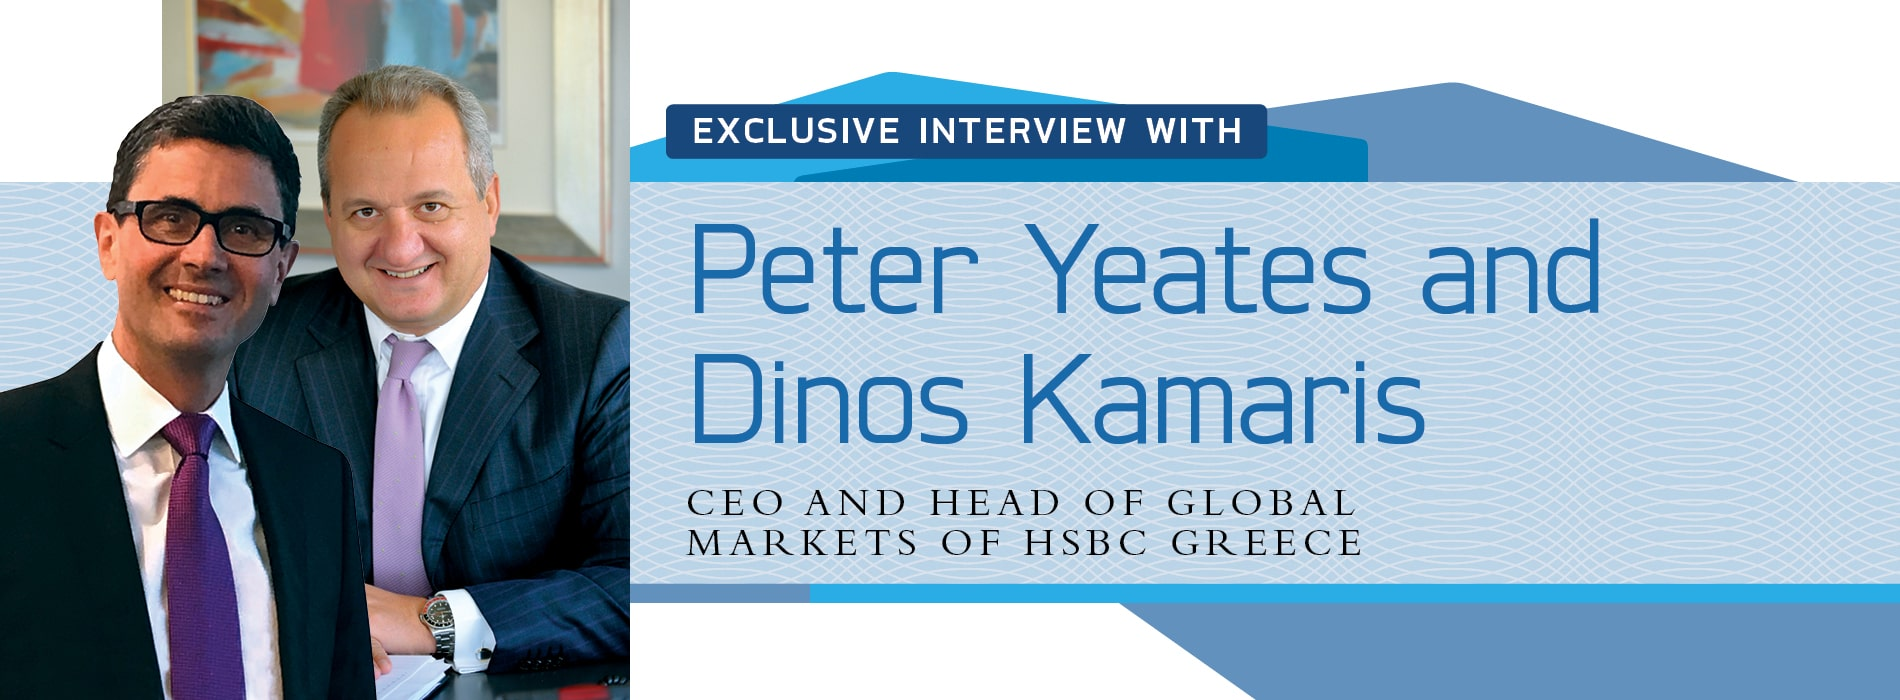 Interview with Peter Yeates and Dinos Kamaris of HSBC Greece